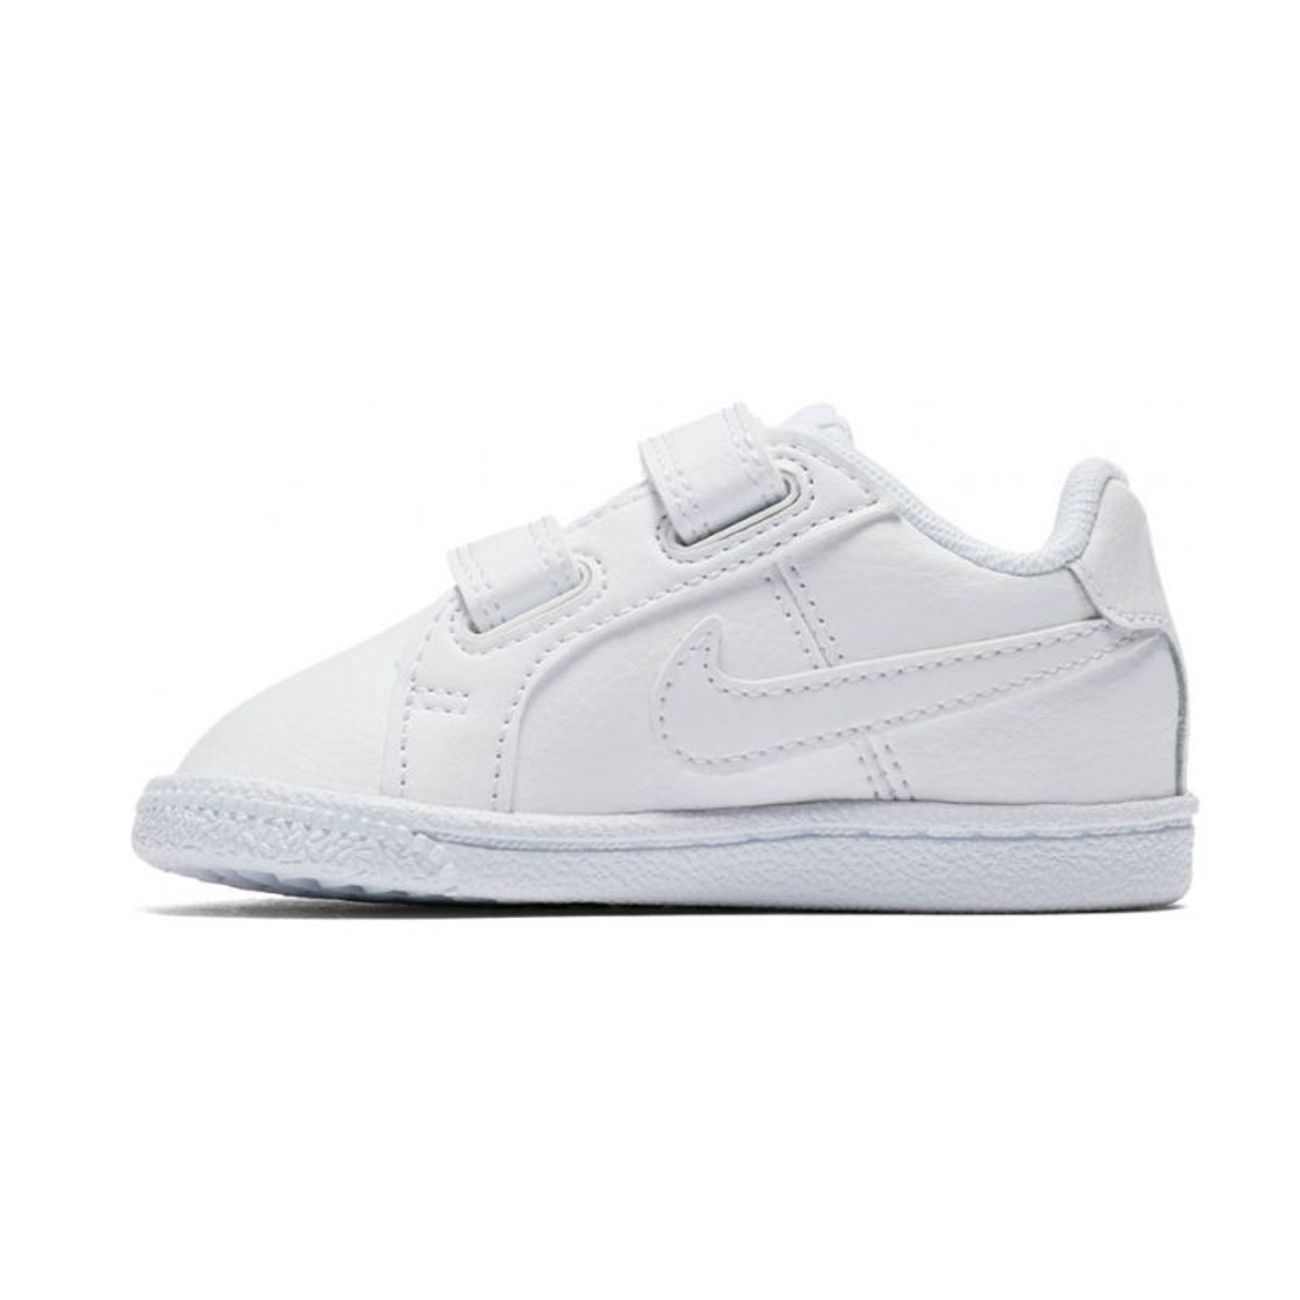 Blanco Junior Padel Adulte Court Nike 102 Royale Ni833537 eWEHIY92D